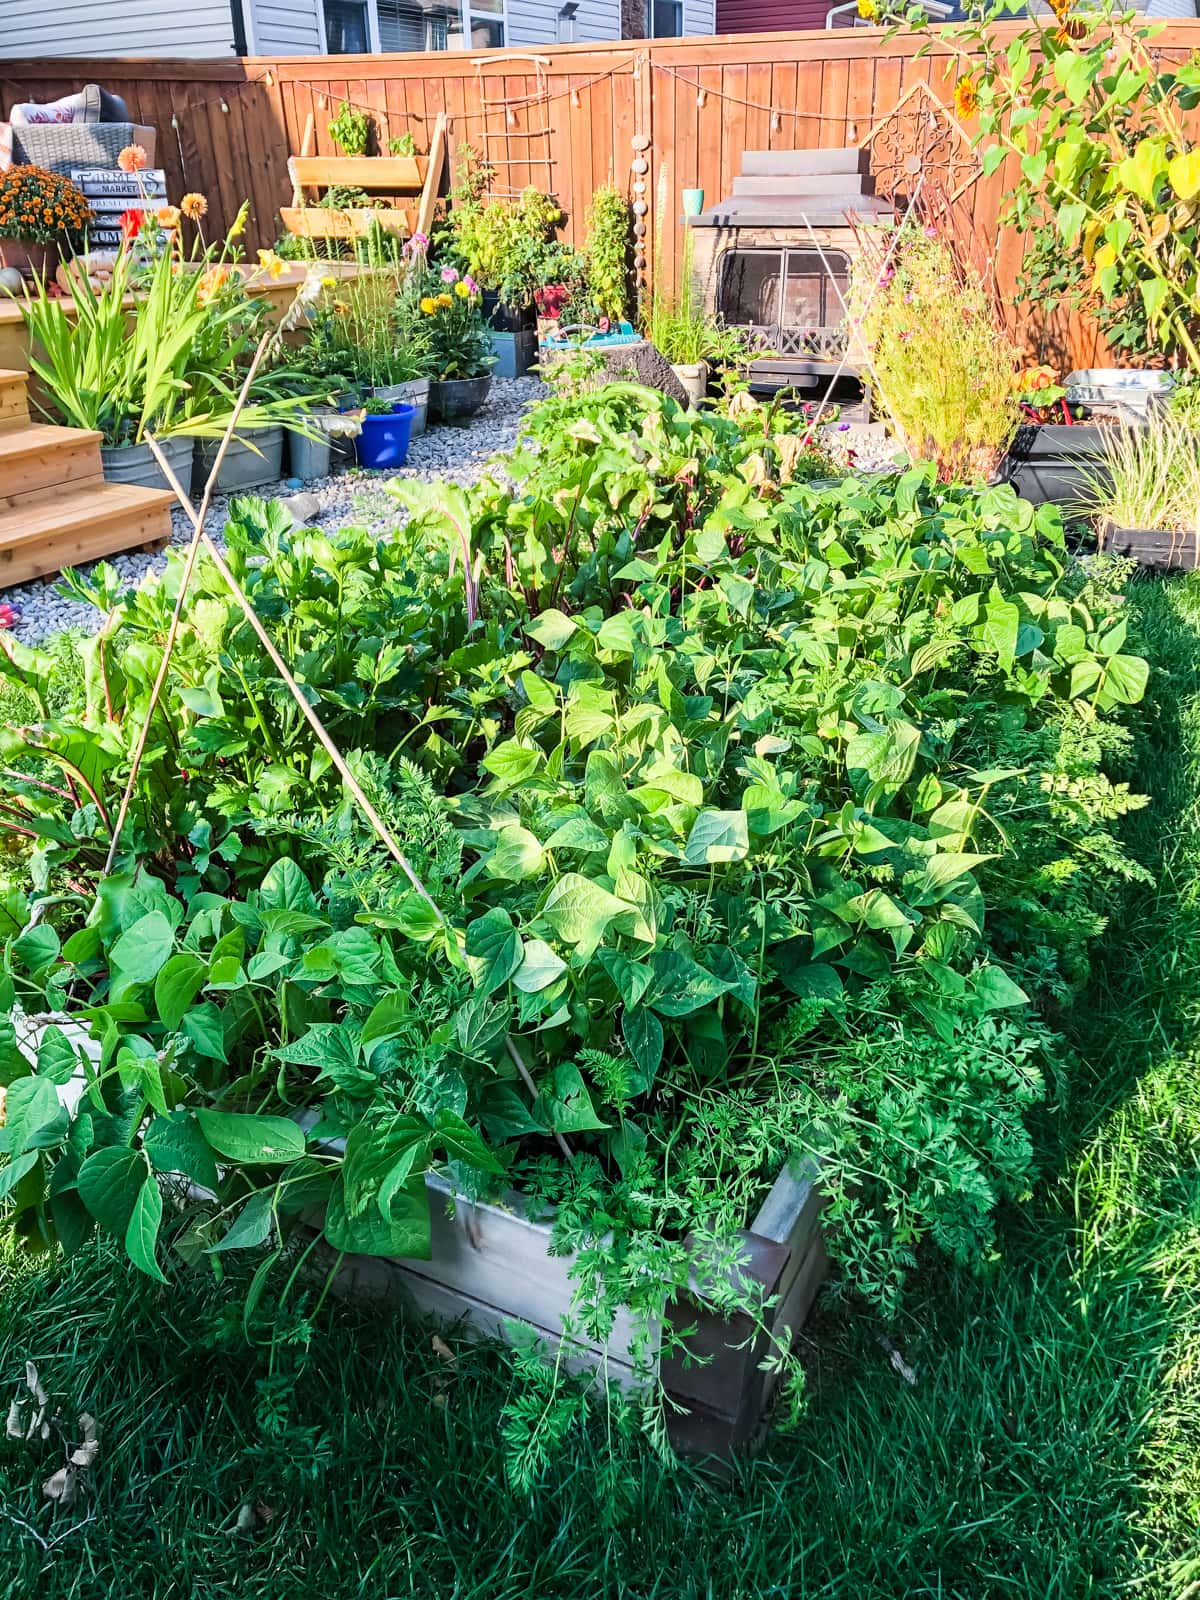 a small urban vegetable garden filled with vegetables. in the background are more pots of vegetables, trees, an outdoor fireplace and chairs